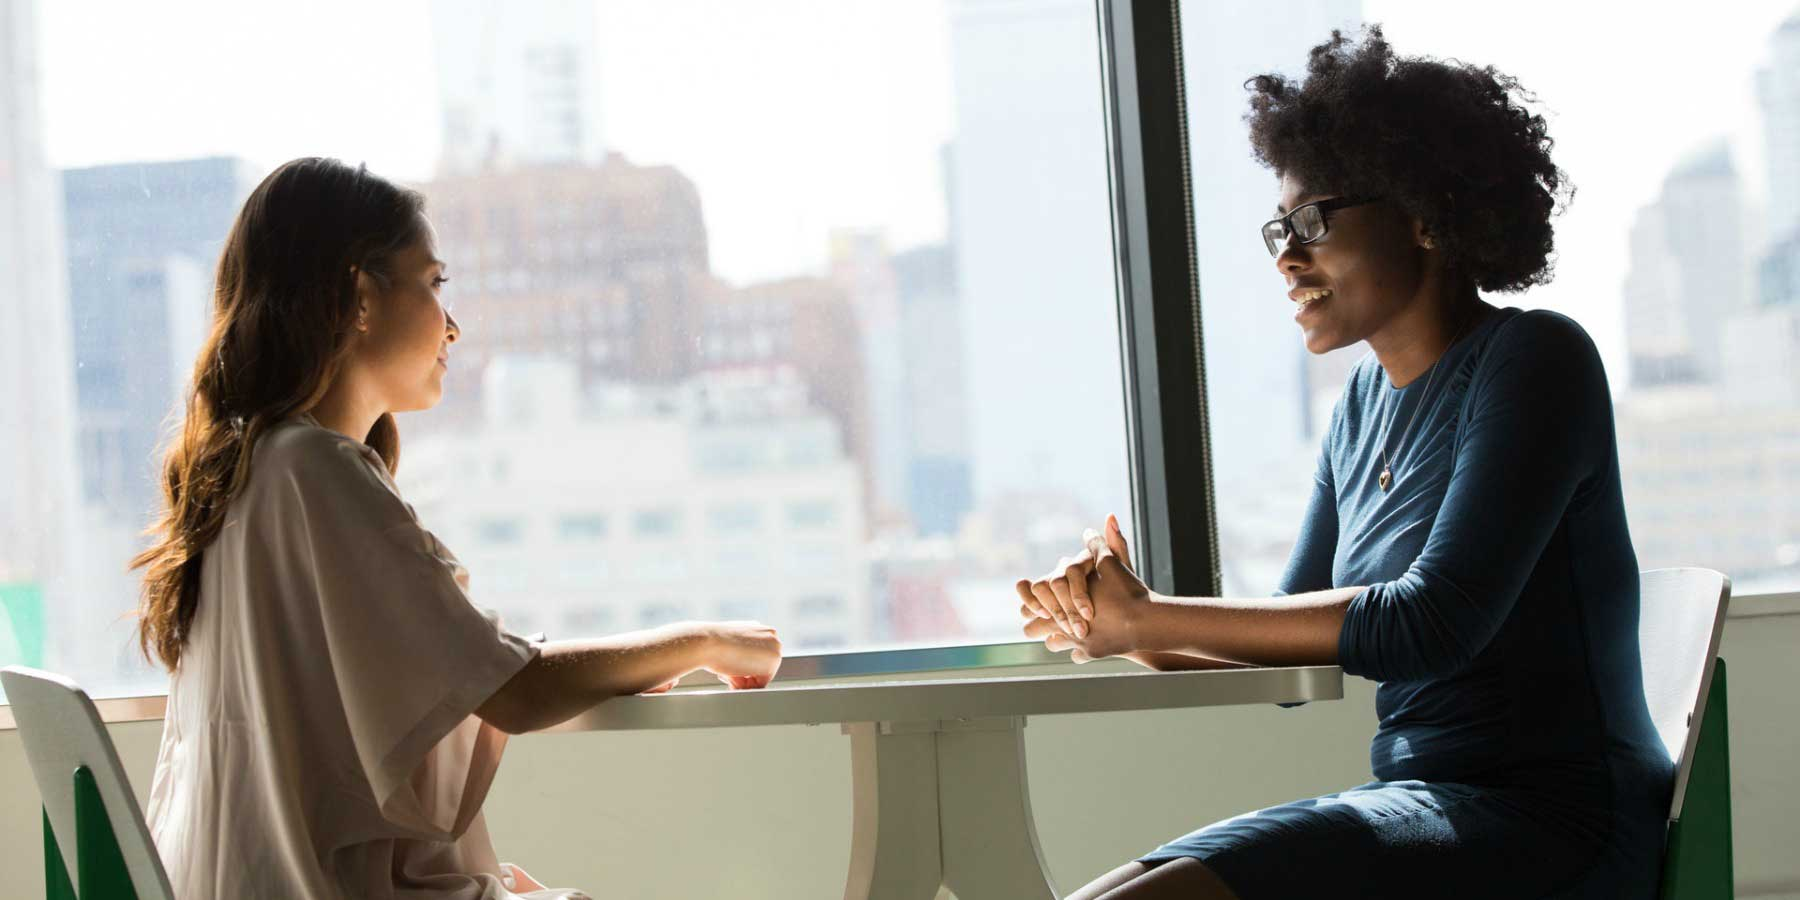 two women talking to each other at table